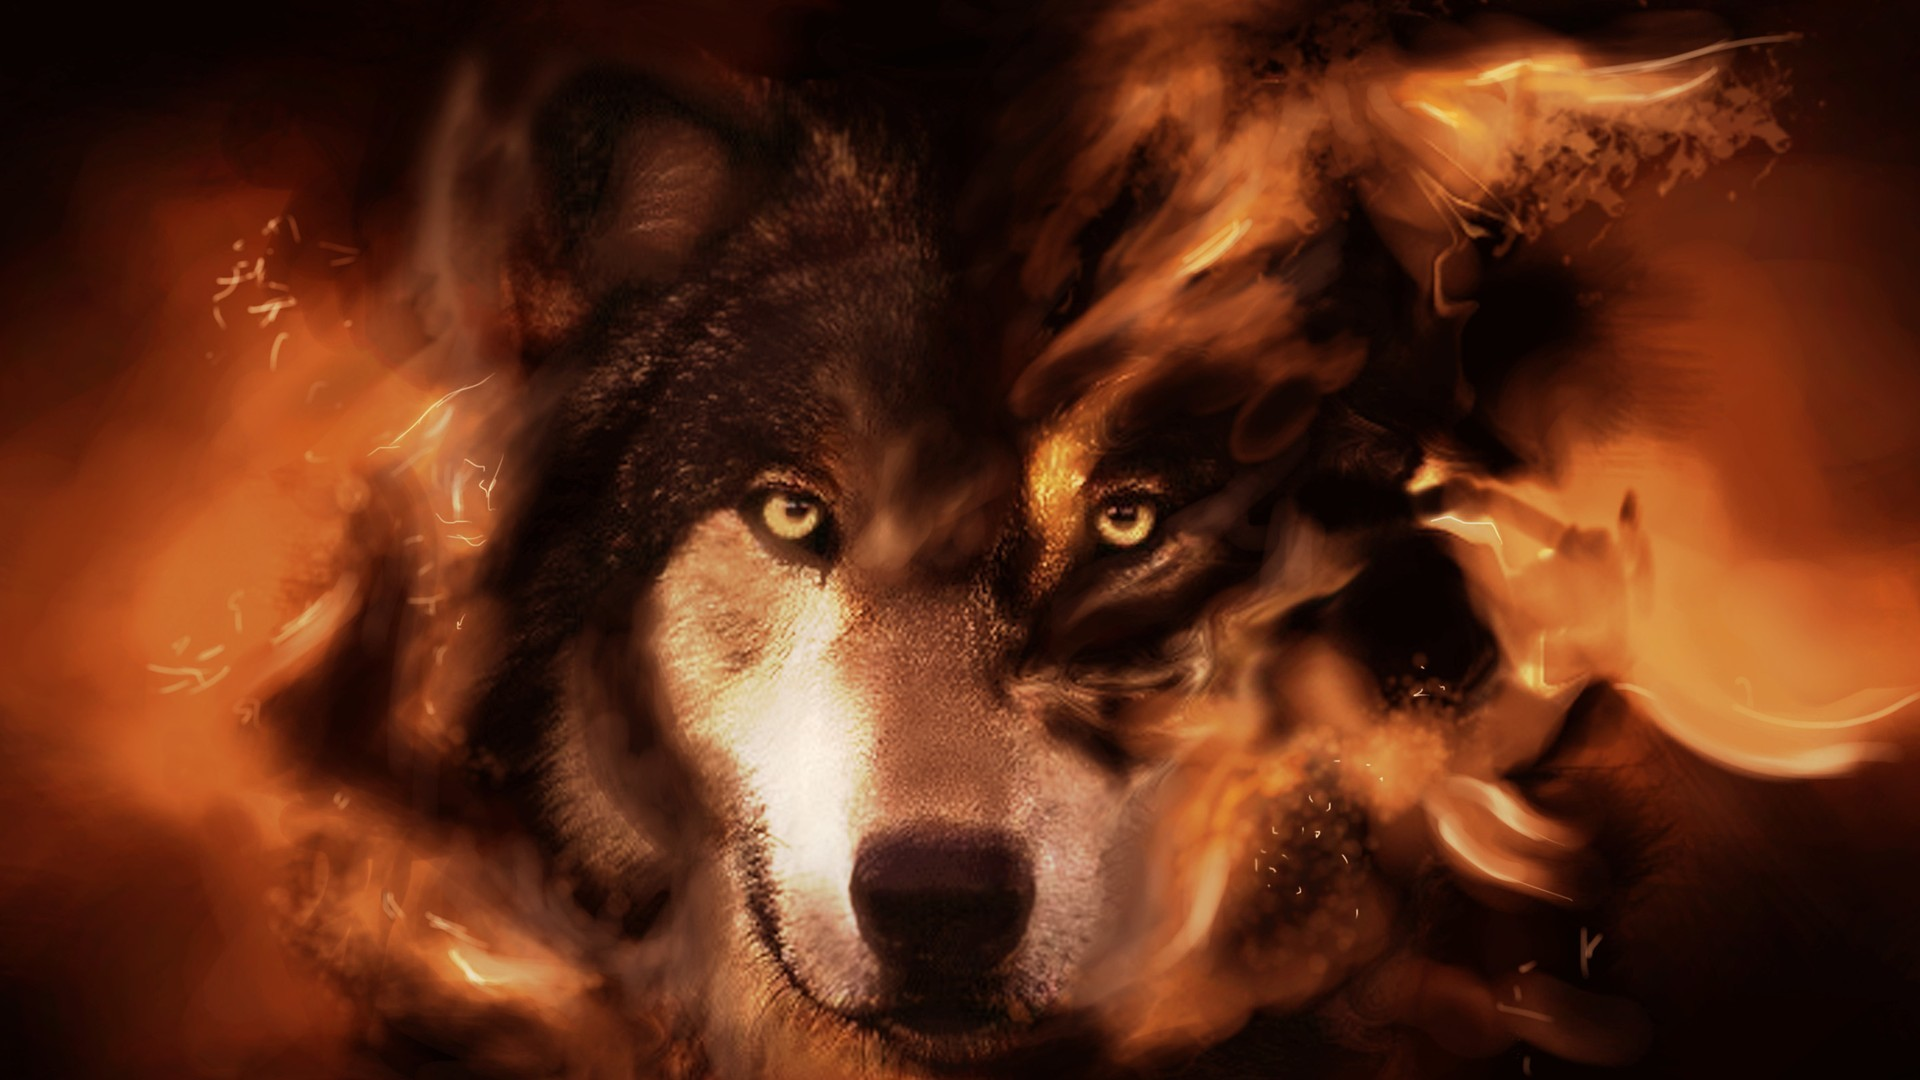 1920x1080 Full Hd 1080p Wolf Wallpapers Desktop Backgrounds